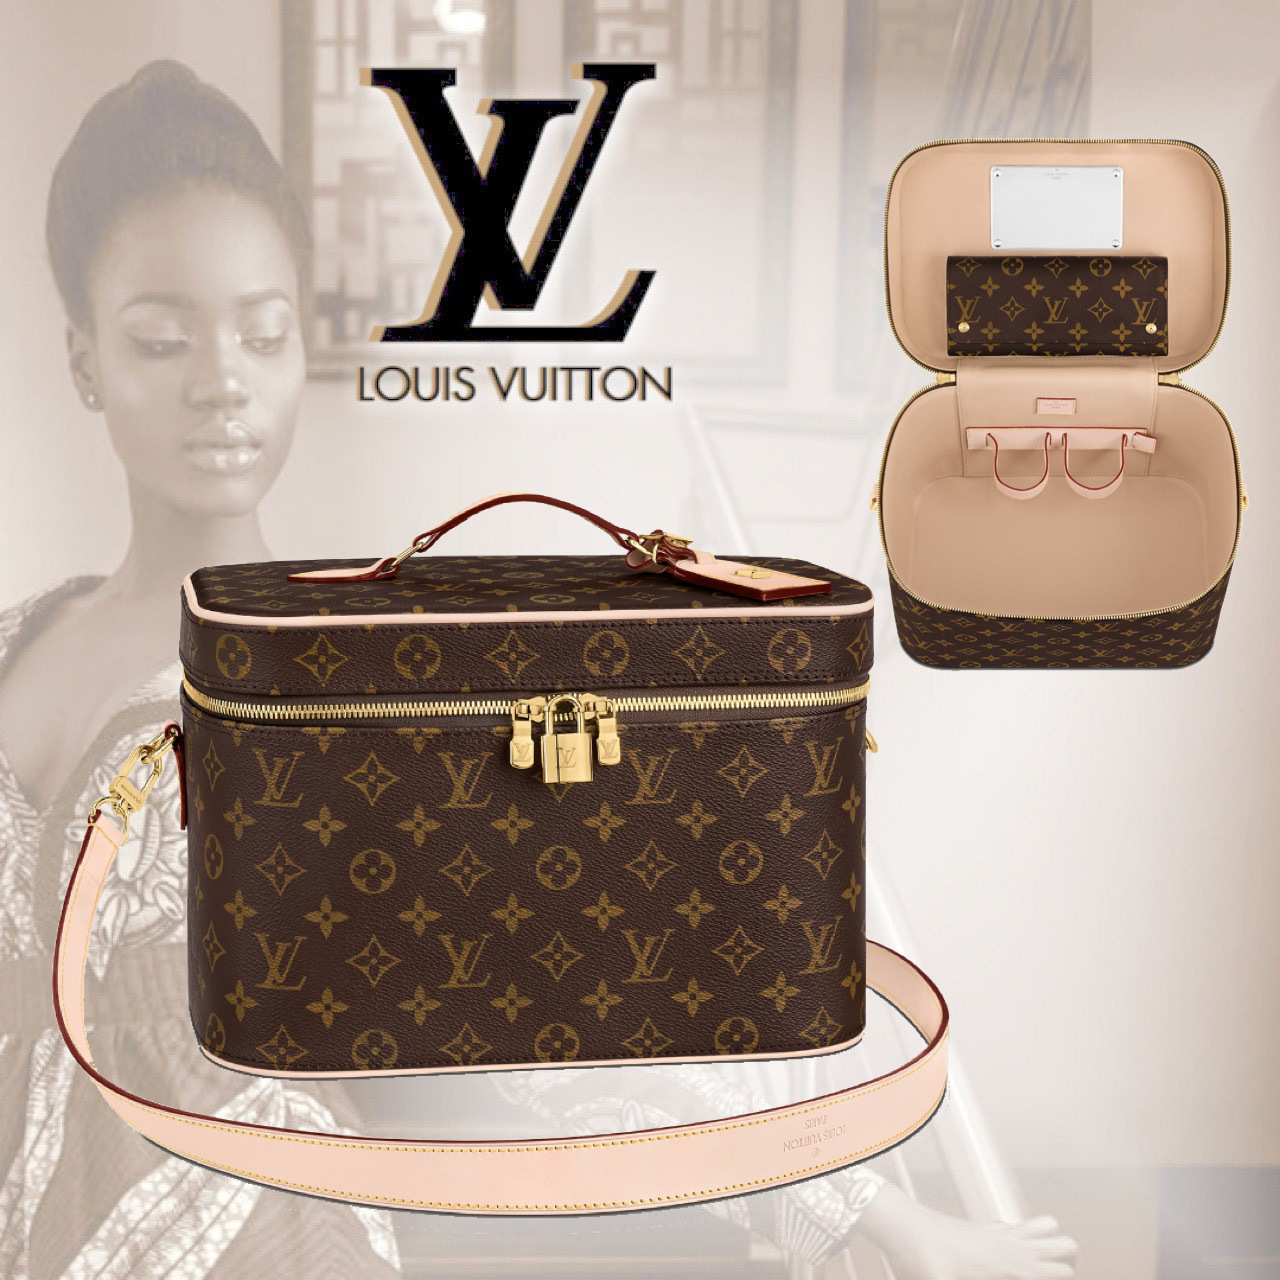 Louis Vuitton モノグラム バッグ コスメ ケース M44935 (Louis Vuitton/財布・小物その他) M44935